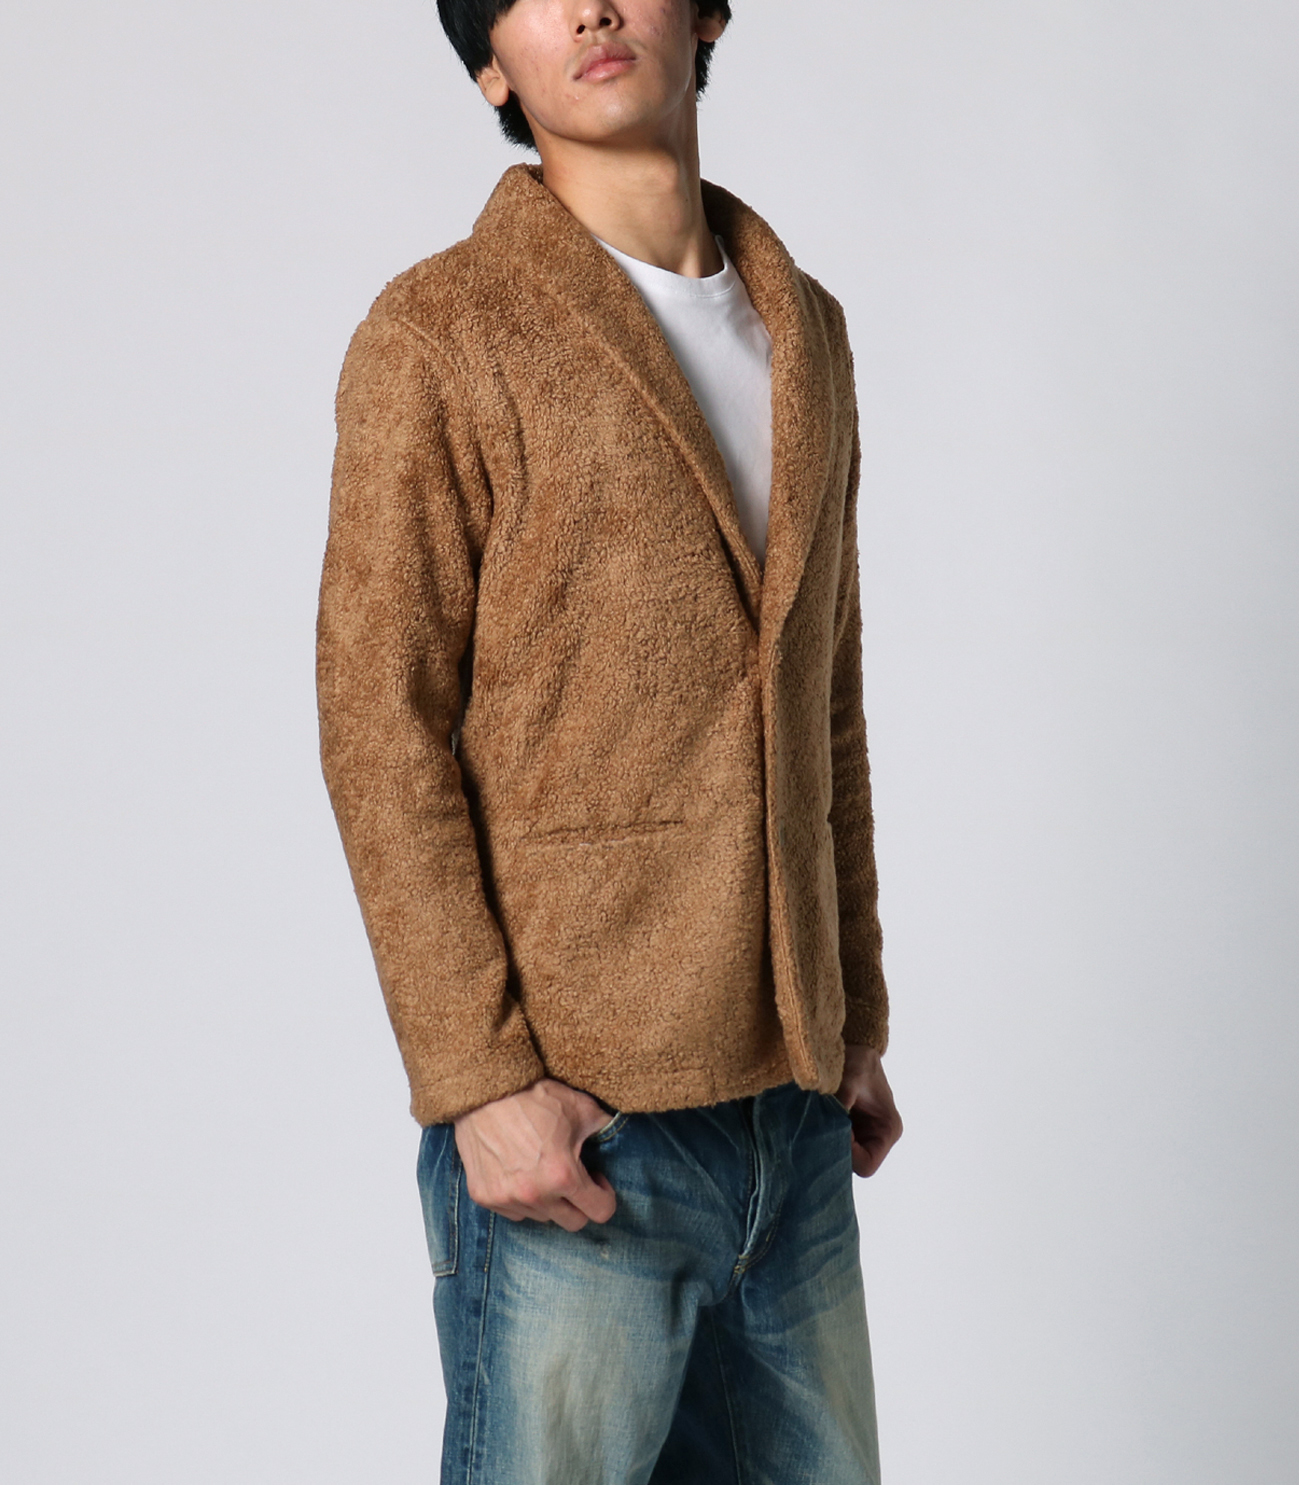 men's light boa shawl collar cardigan 詳細画像 camel 6